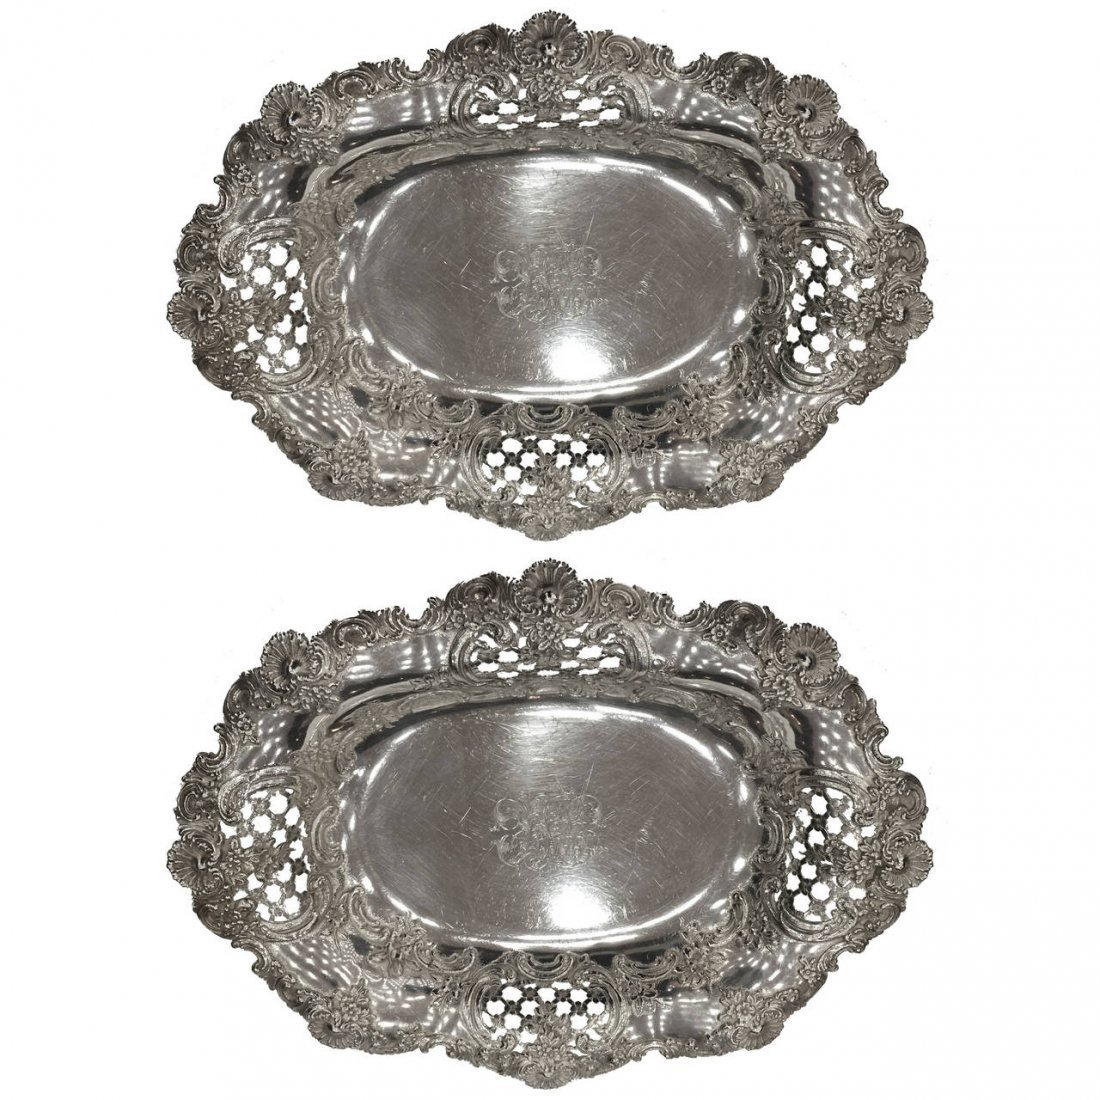 Pair of Tiffany and Co. Sterling Garniture Bowls 1920s